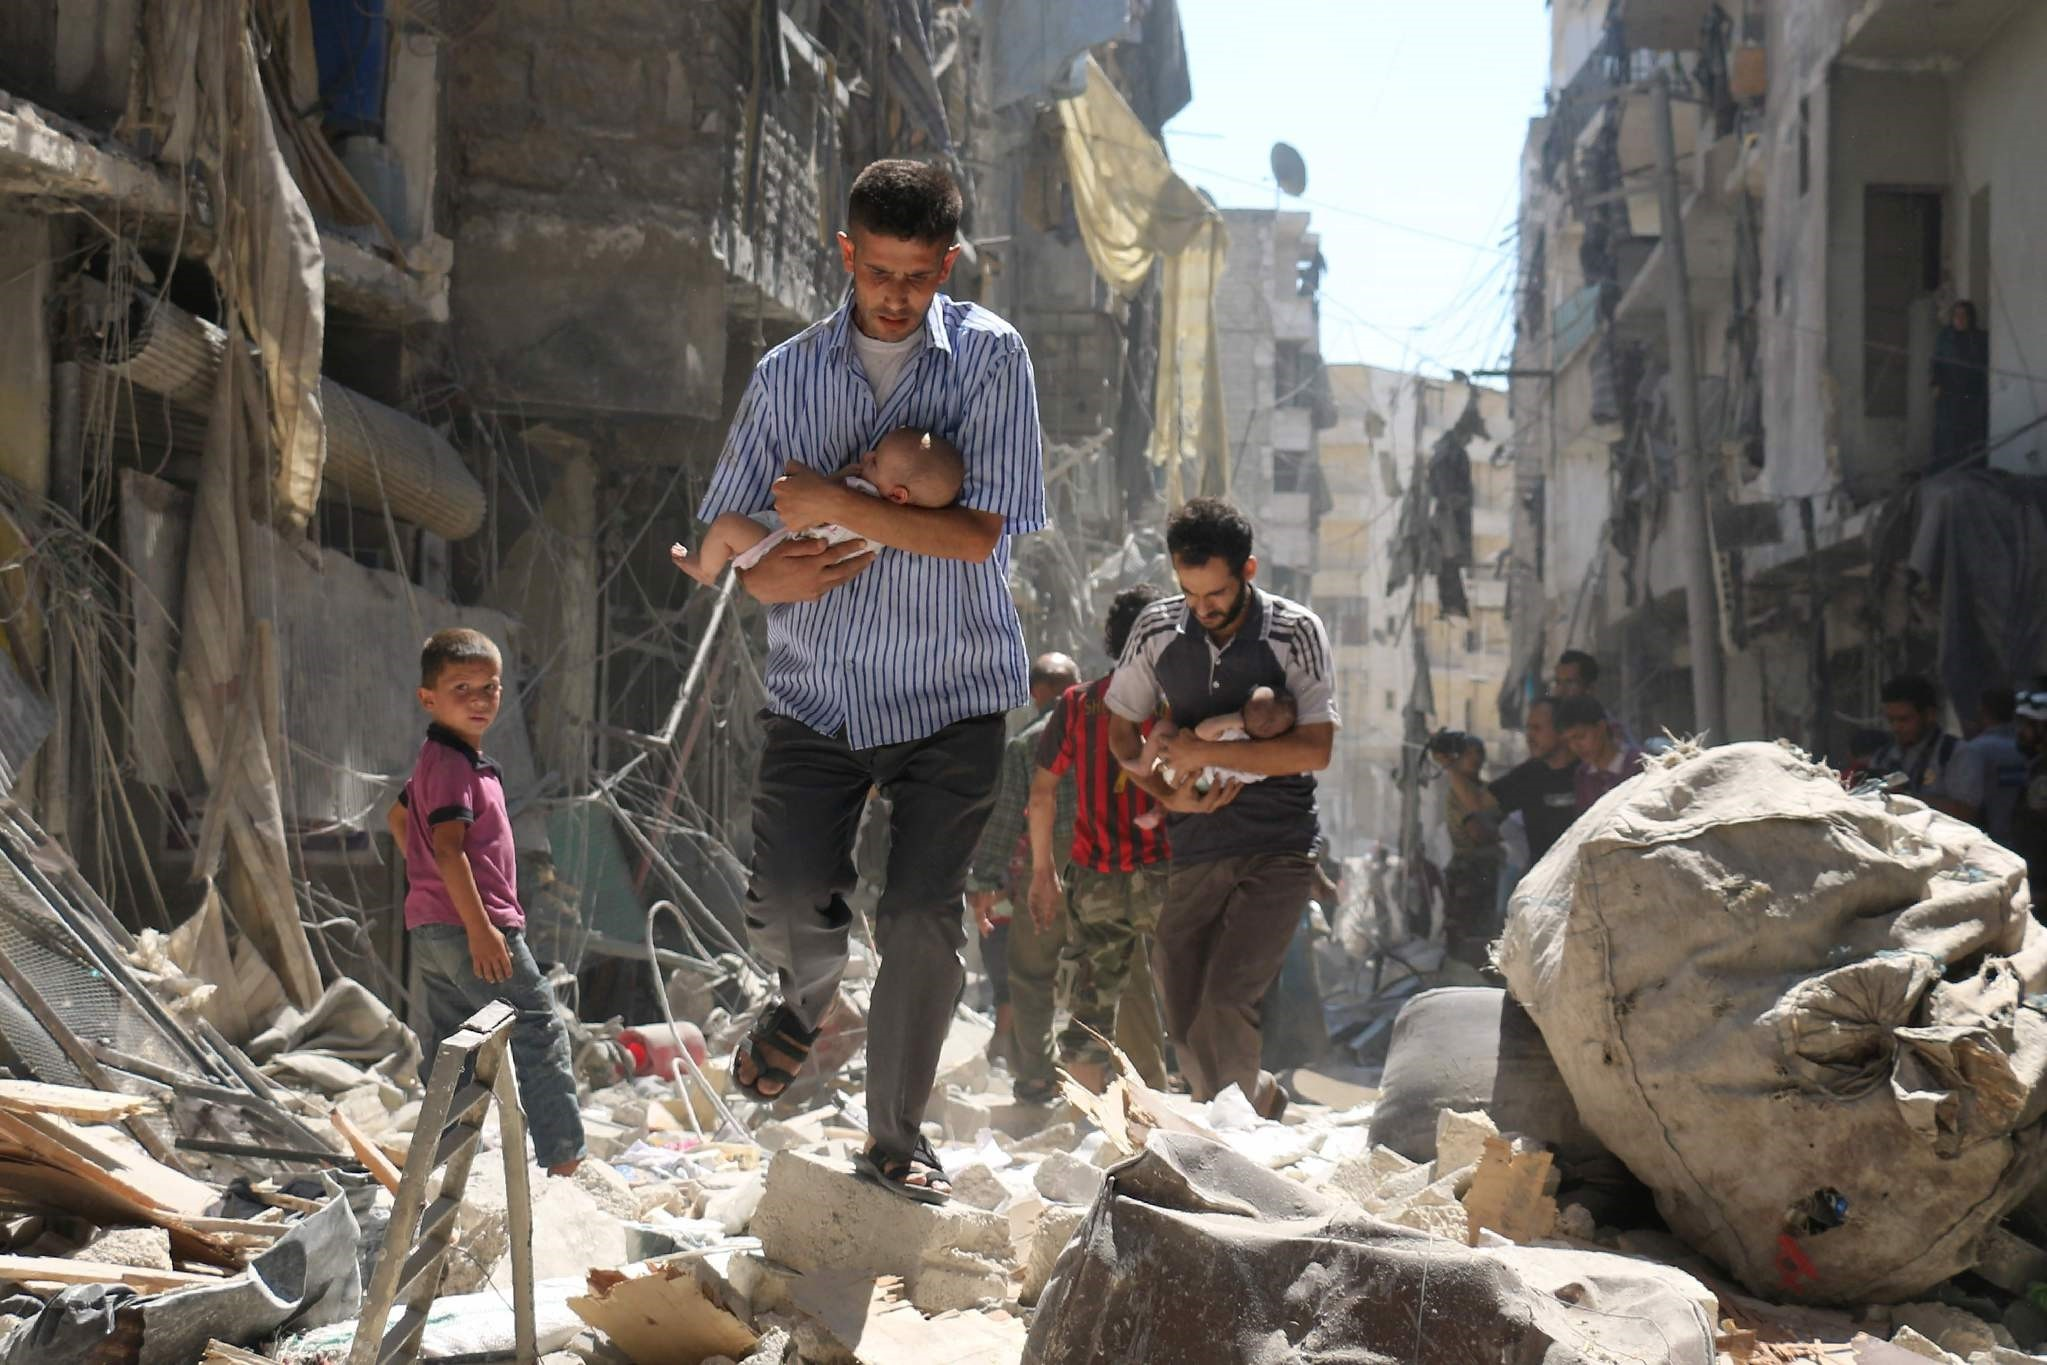 Syrian men carrying babies make their way through the rubble of destroyed buildings following a reported air strike in Aleppo, on September 11, 2016. (AFP Photo)